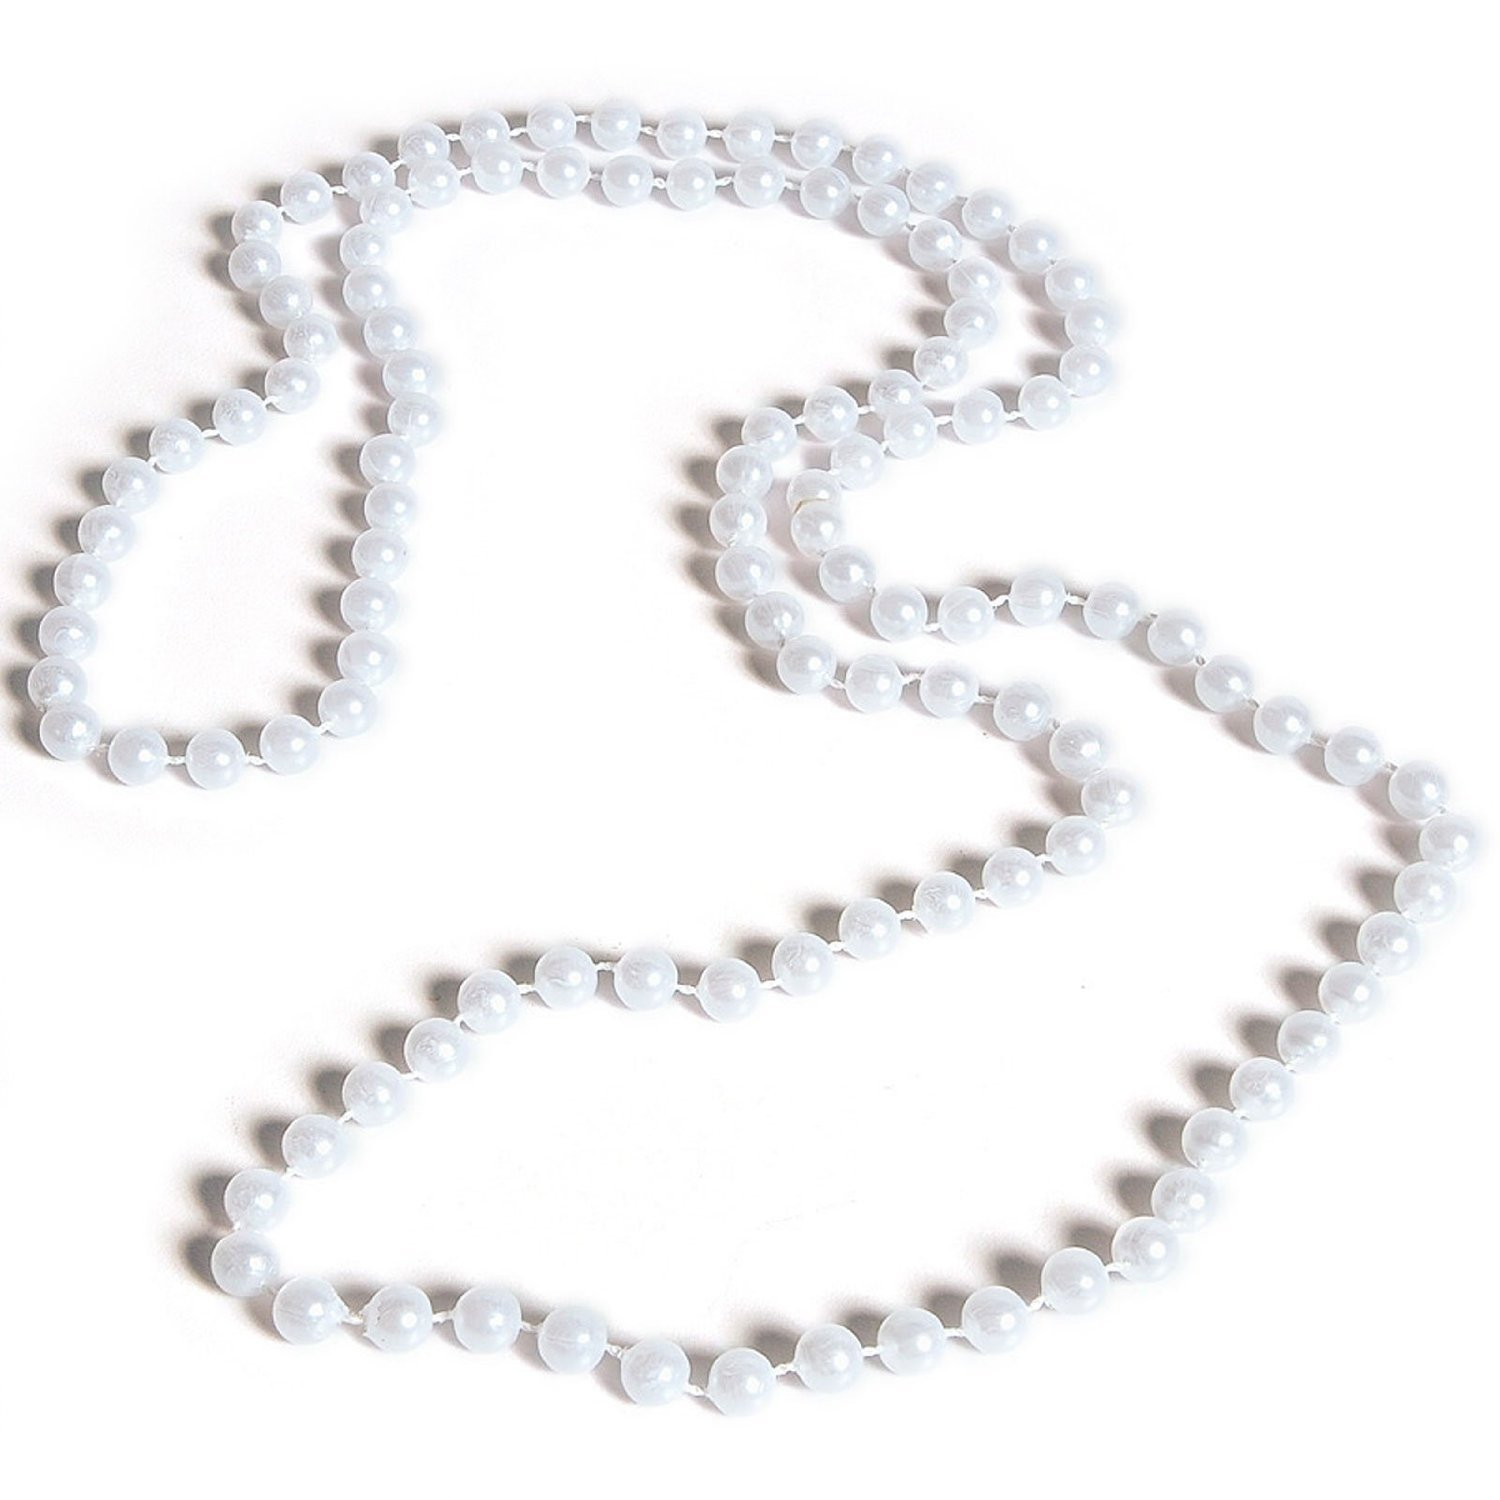 Amazon: Rhode Island Novelty Pearl Necklaces (12pack) 48